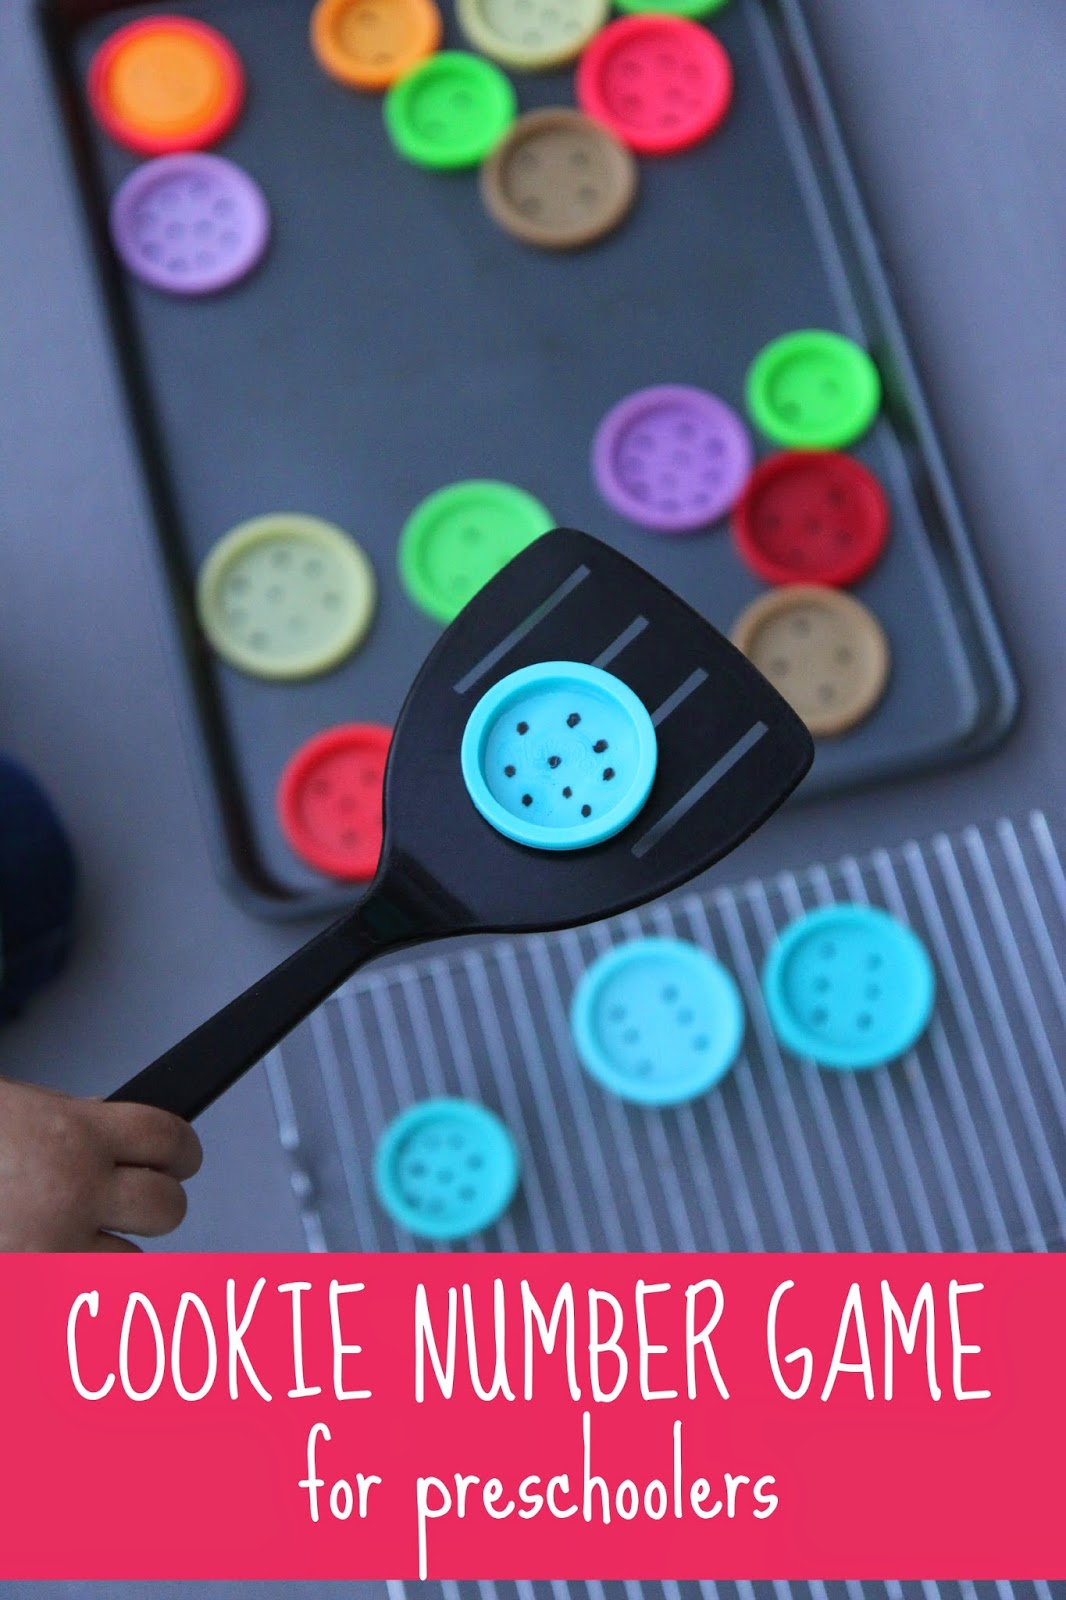 Toddler Approved!: If You Give A Mouse A Cookie Number Game for ...